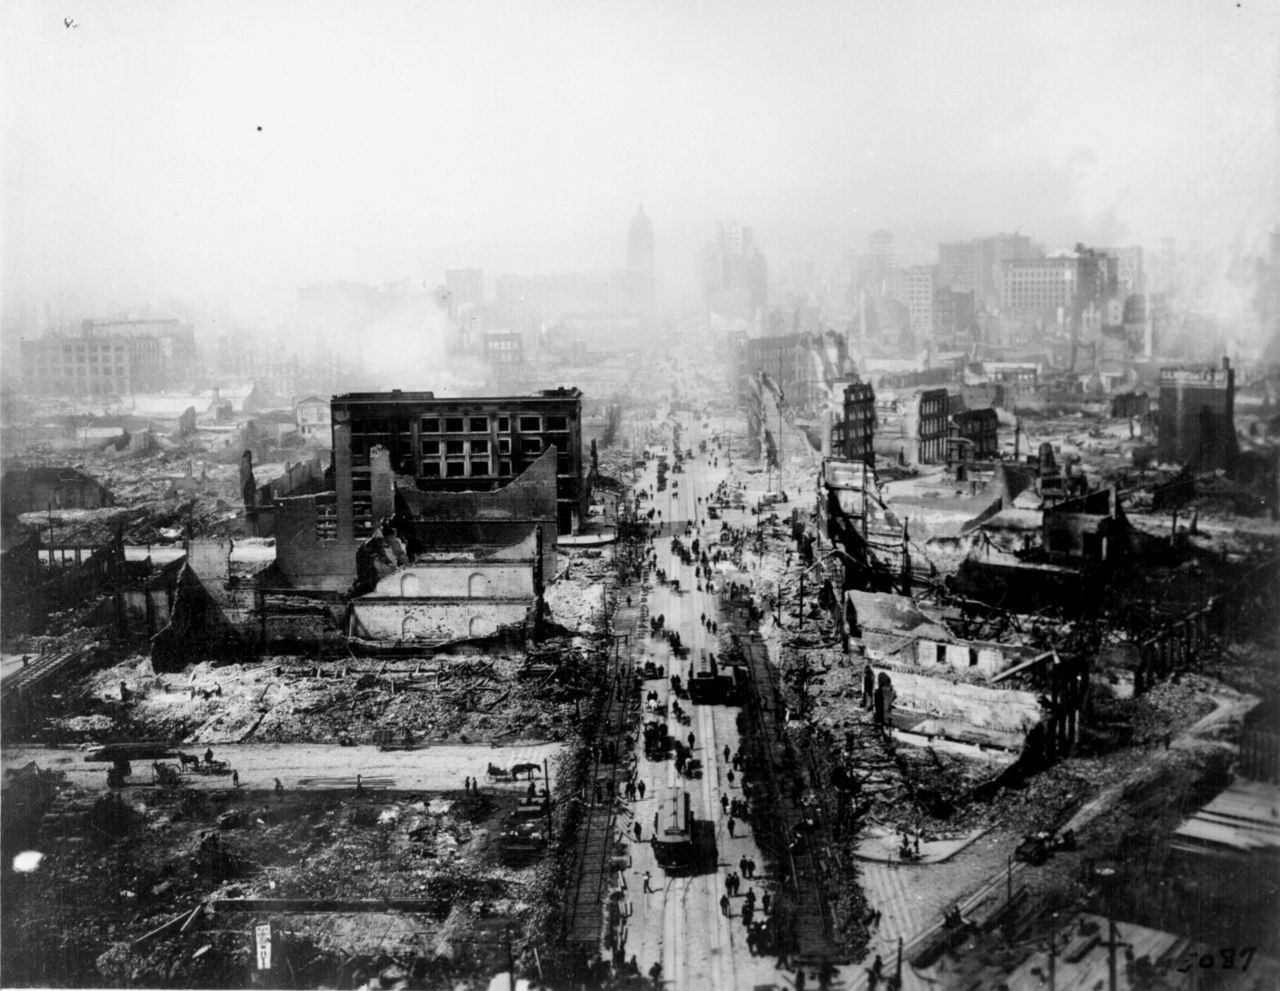 San Francisco In Ruins Still Smoldering After The 1906 Earthquake Photo From Tower Of The Union San Francisco Earthquake Natural Disasters San Andreas Fault